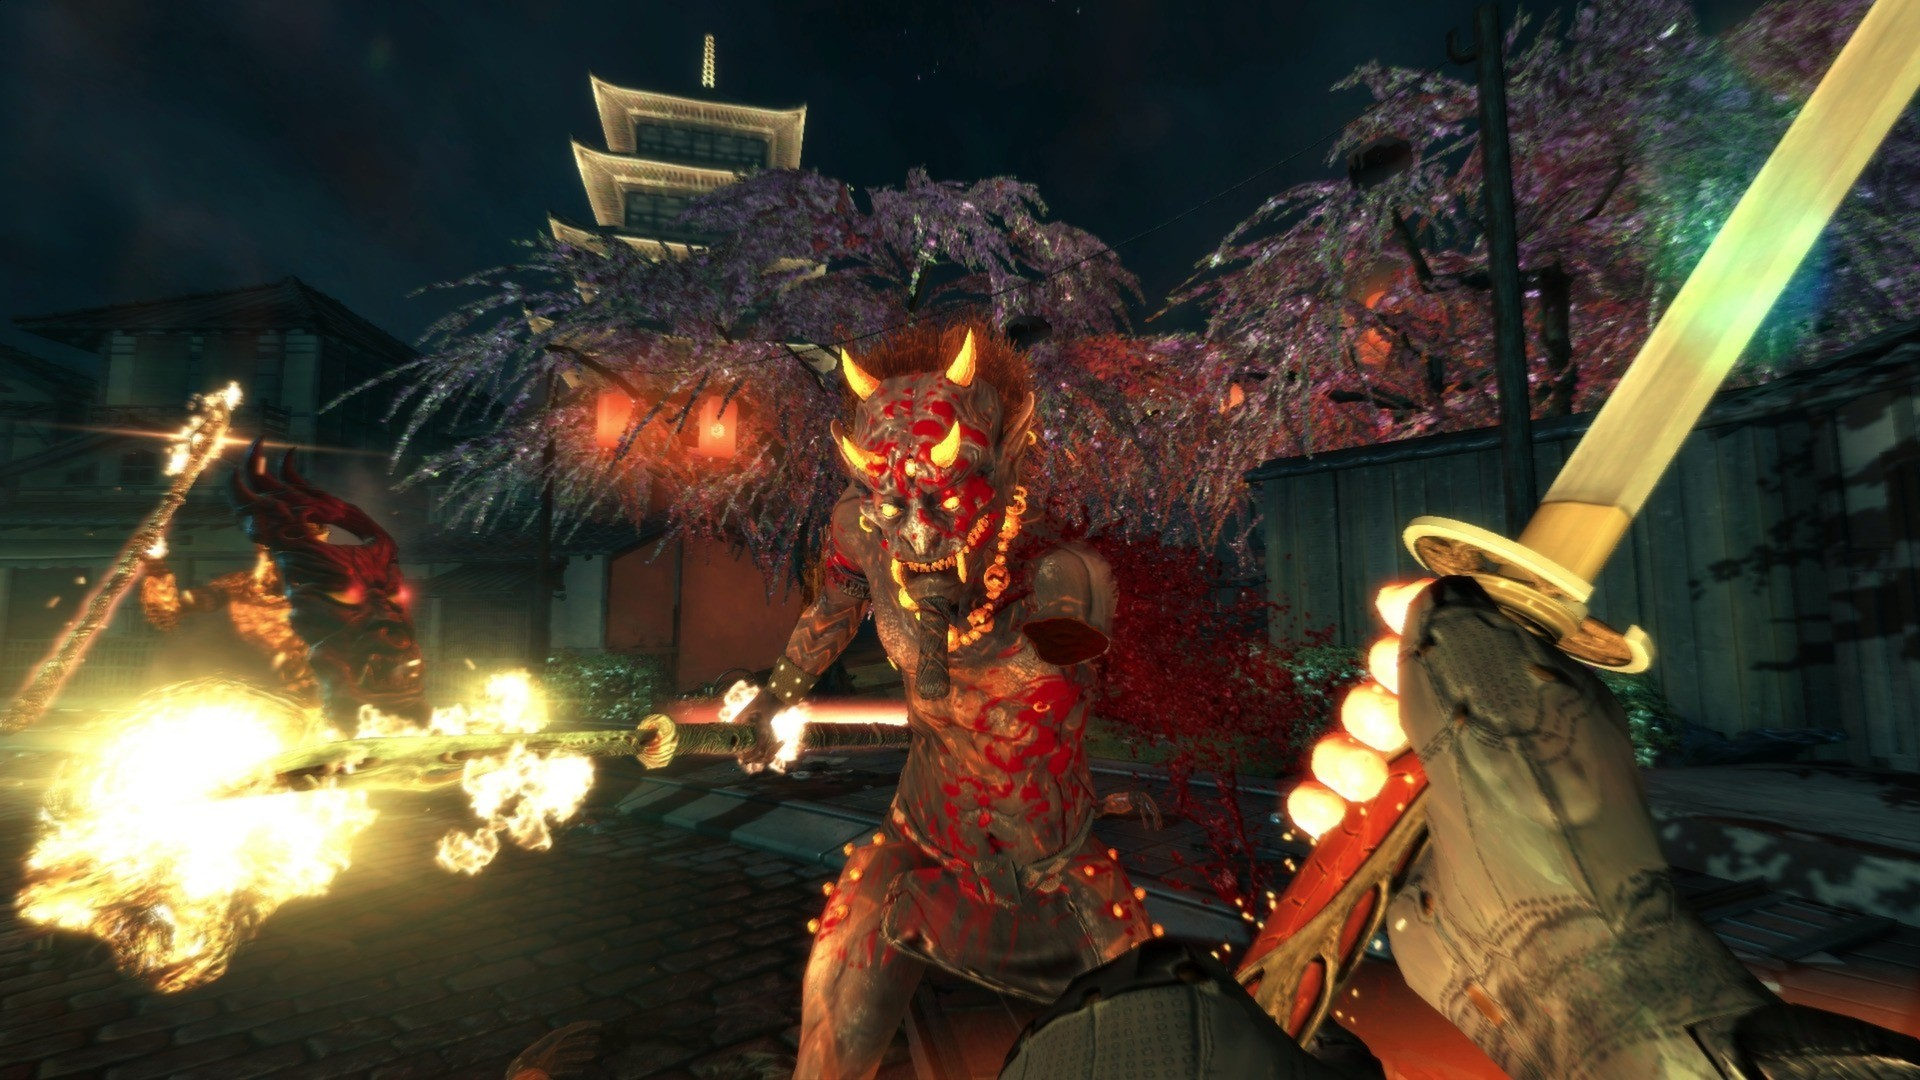 Shadow Warrior (2013) free at Humble Store until Saturday